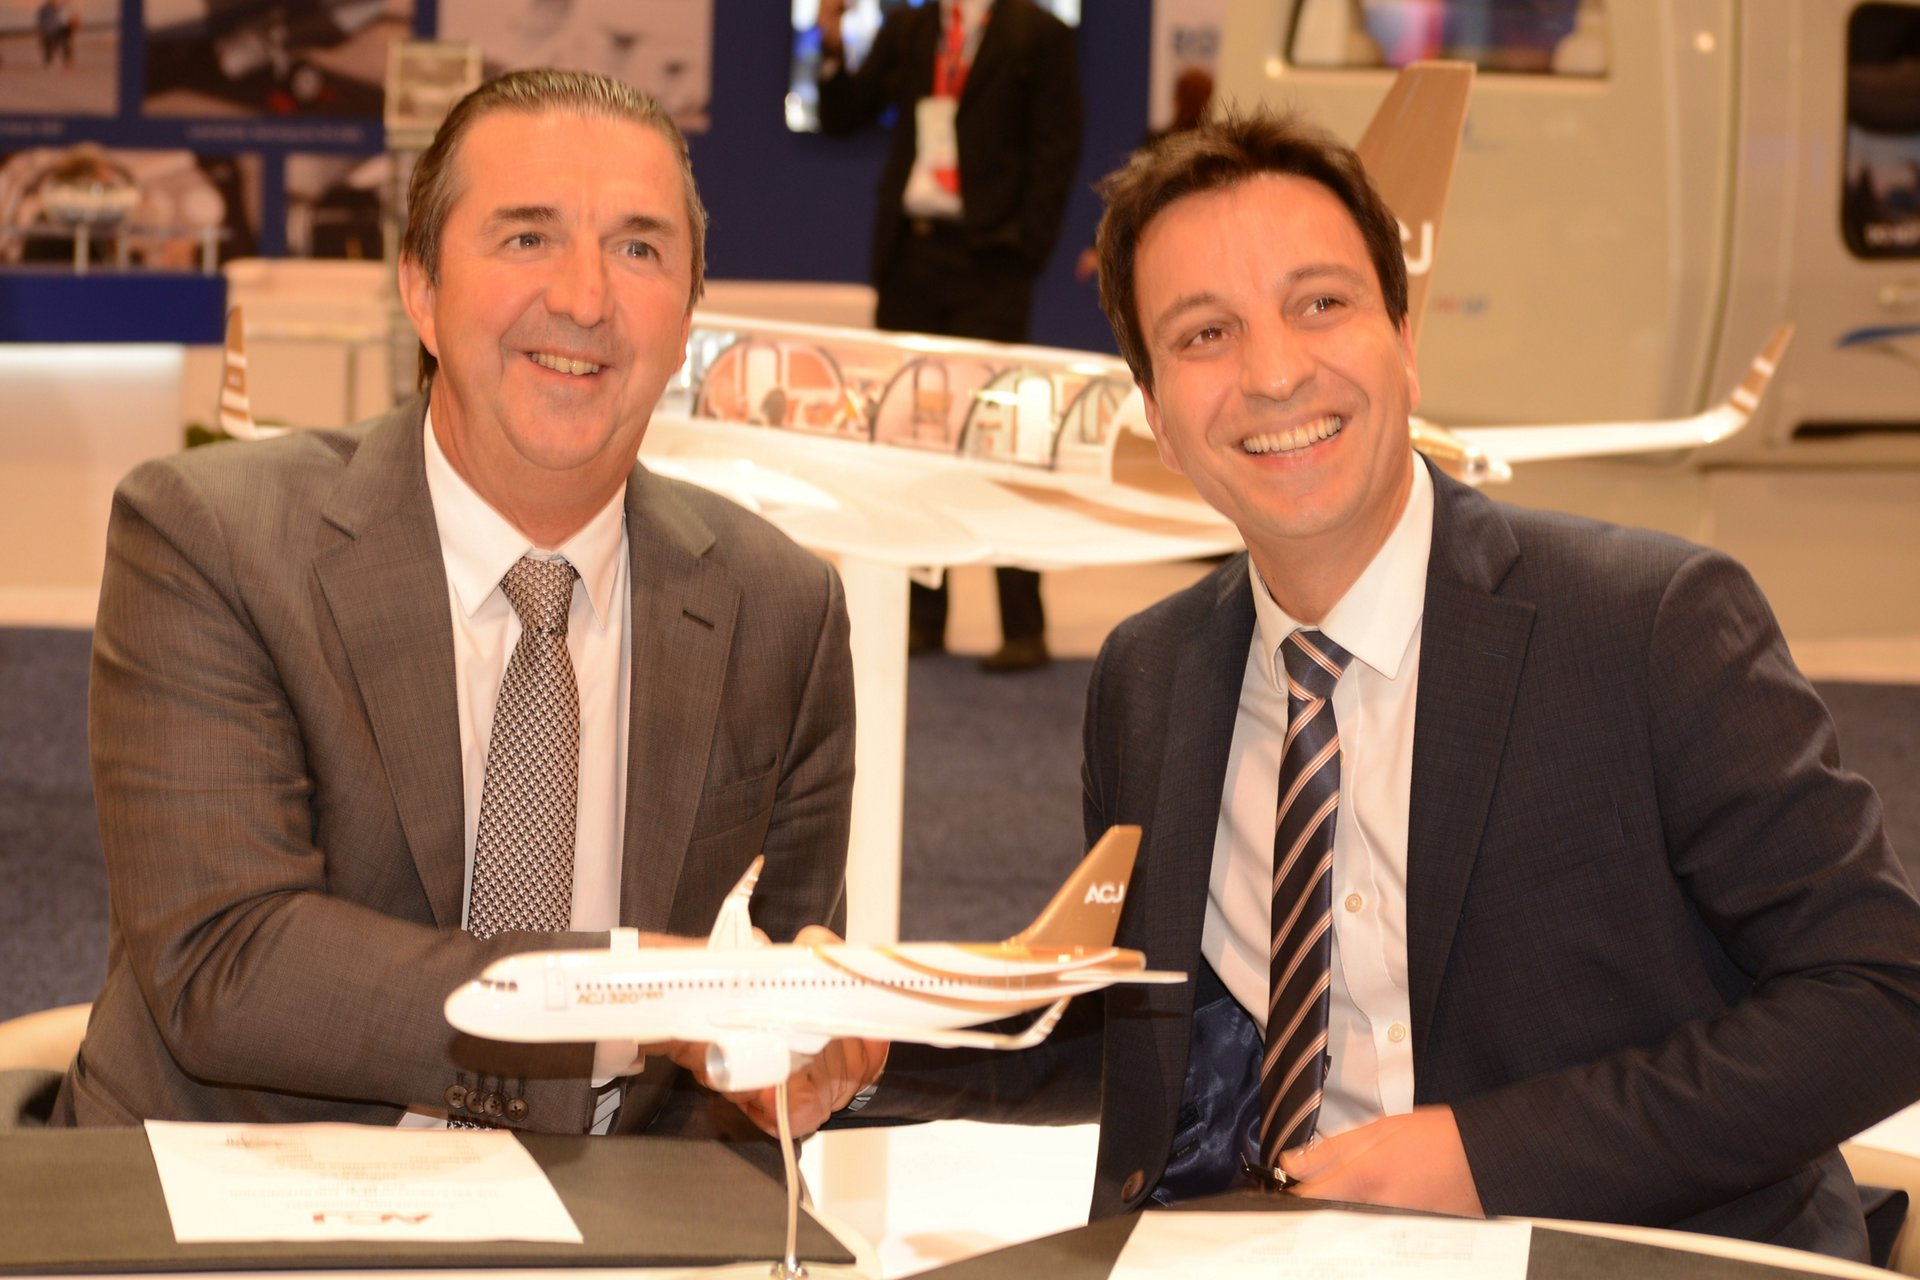 Airbus Corporate Jets (ACJ) and Sabena technics' newly-announced cooperation for self-protection systems (SPSs) is marked by (left to right): ACJ President Benoit Defforge and Daniel Soltani, Sabena technics Senior Vice president Sales and Business Development